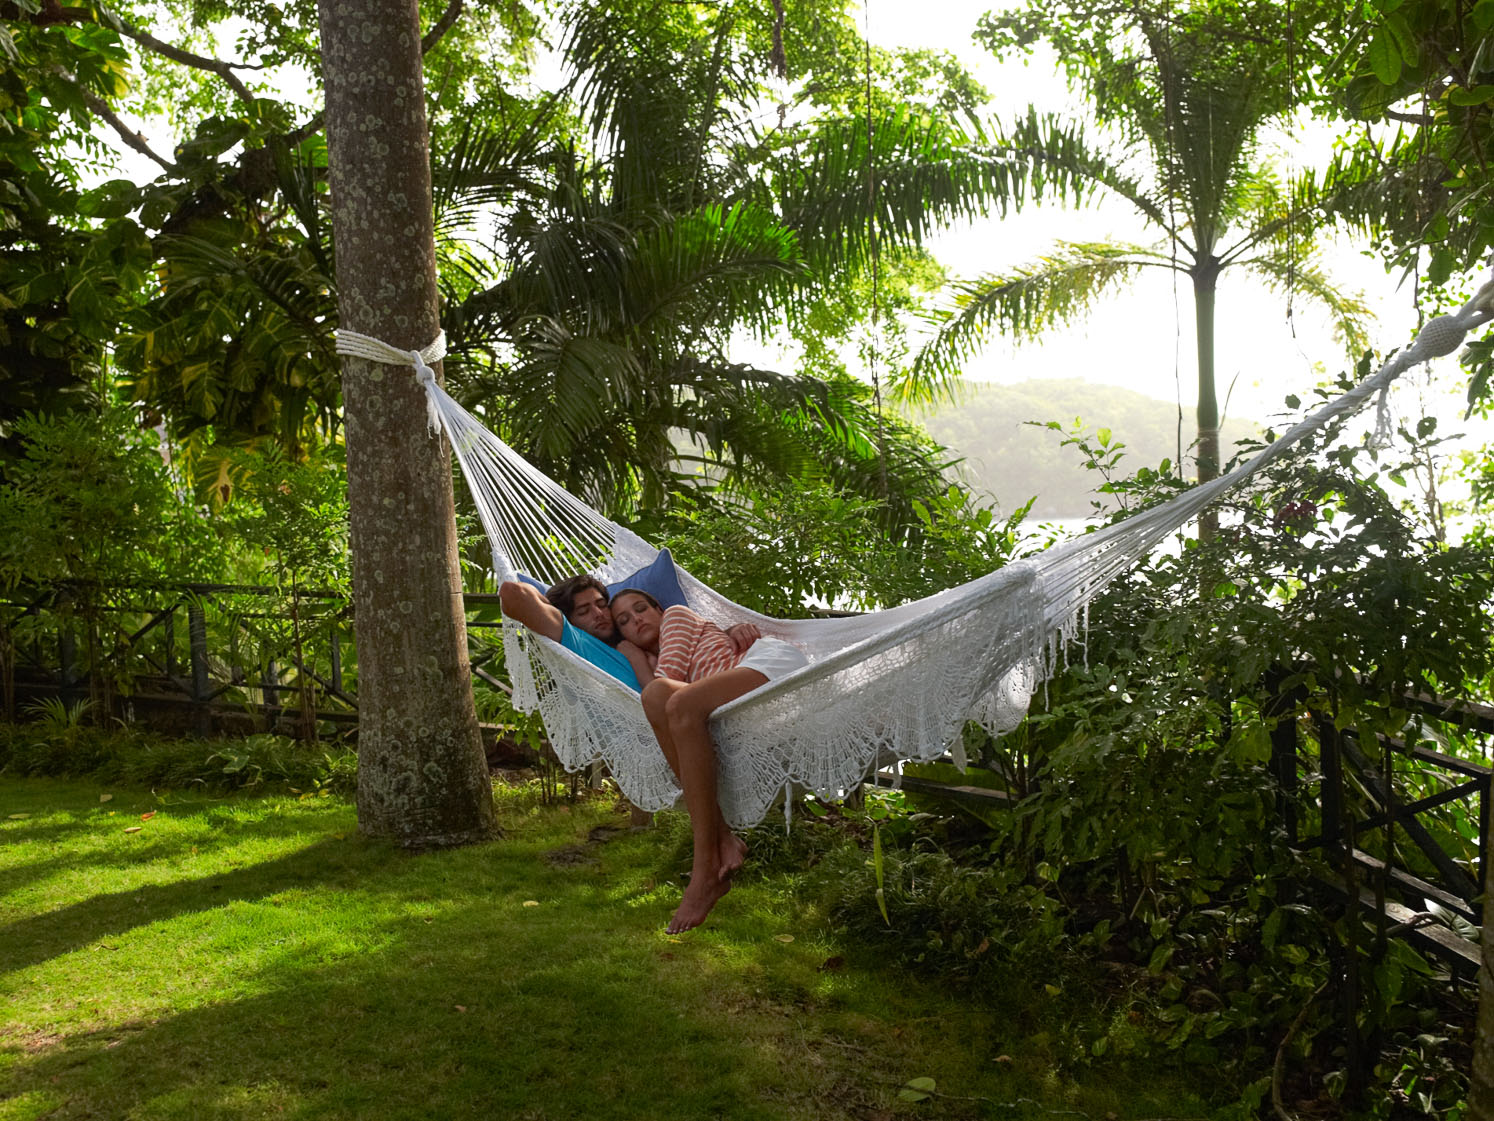 Steal a nap in a hammock